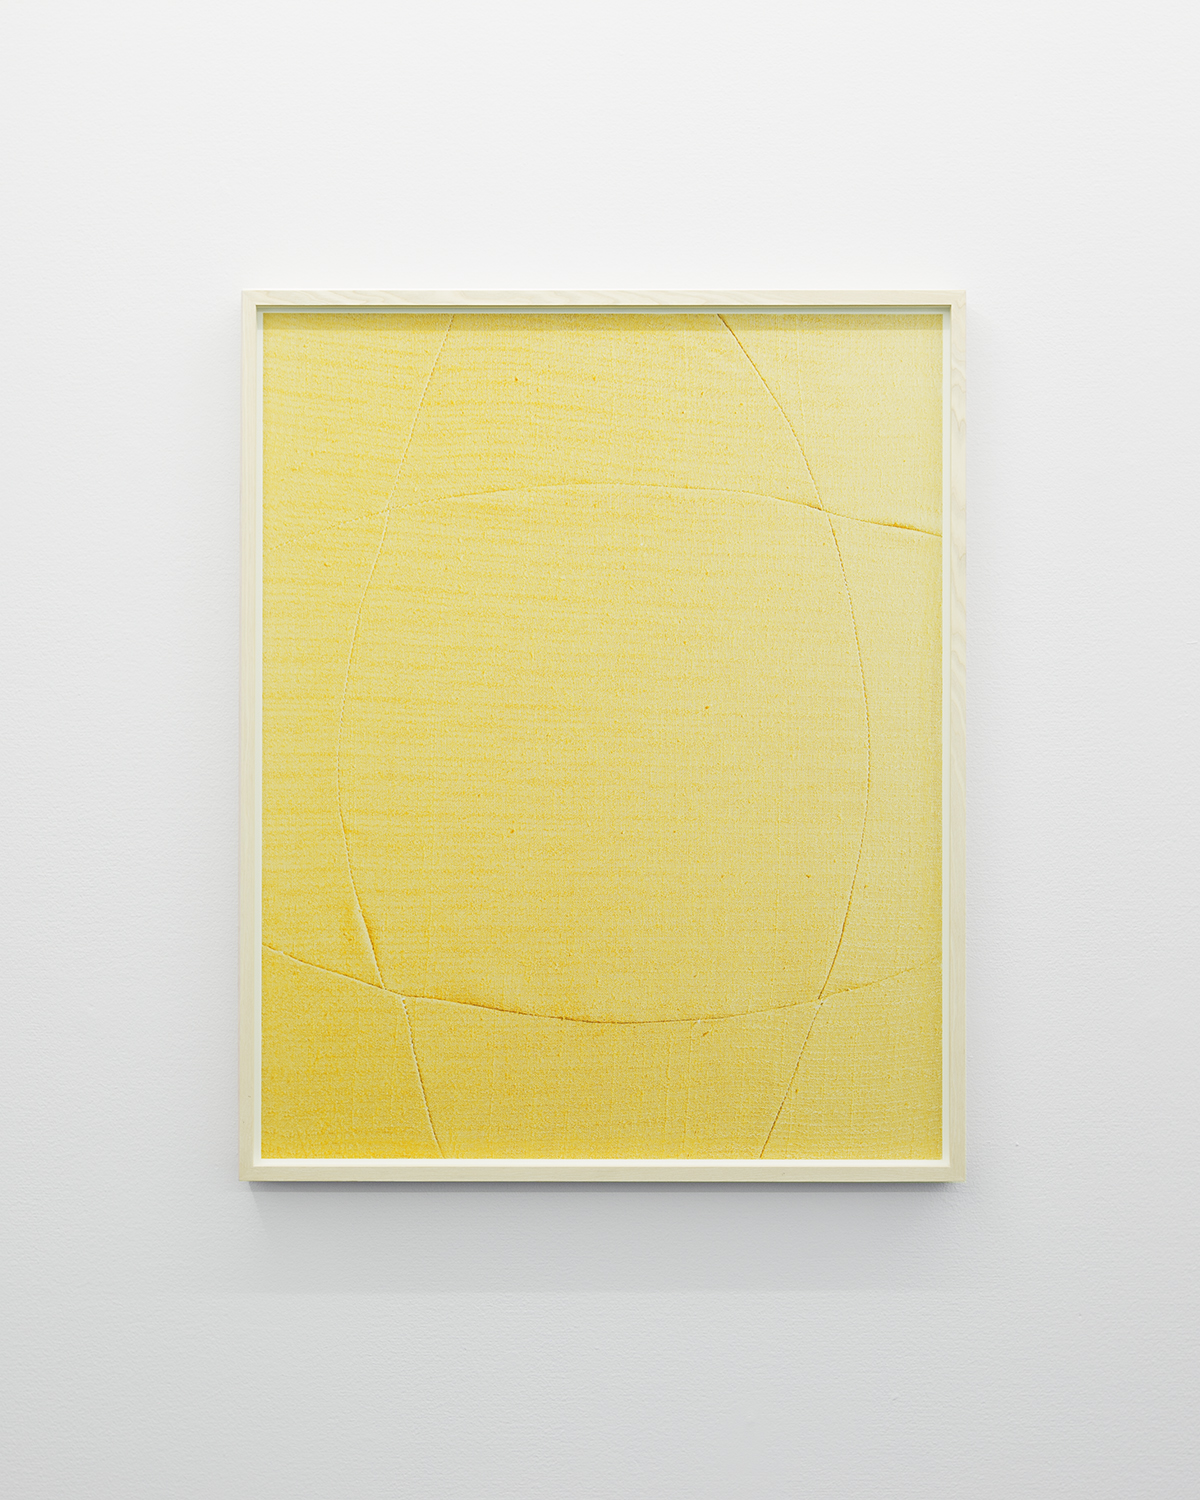 Linda Hofvander, Suggested Shape (yellow), 2019, Inkjet print, museum glass, whitewashed frame, 92 x 75 cm, edition of 5